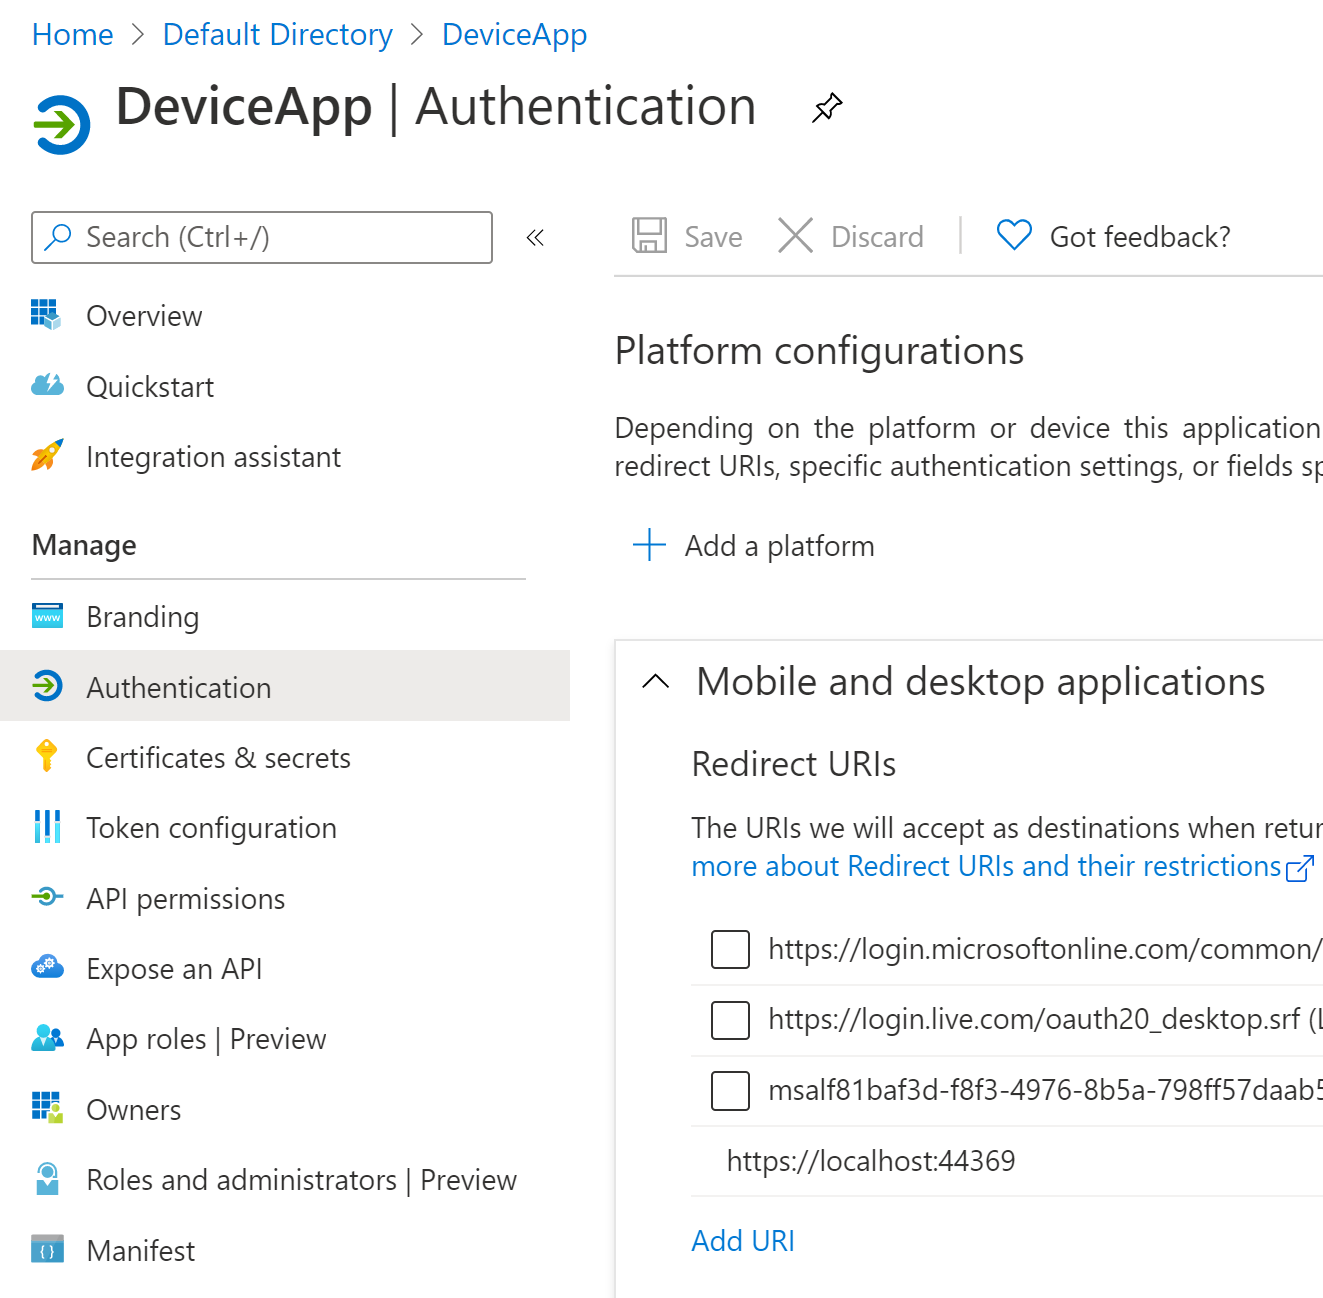 Implement OAUTH Device Code Flow with Azure AD and ASP.NET Core